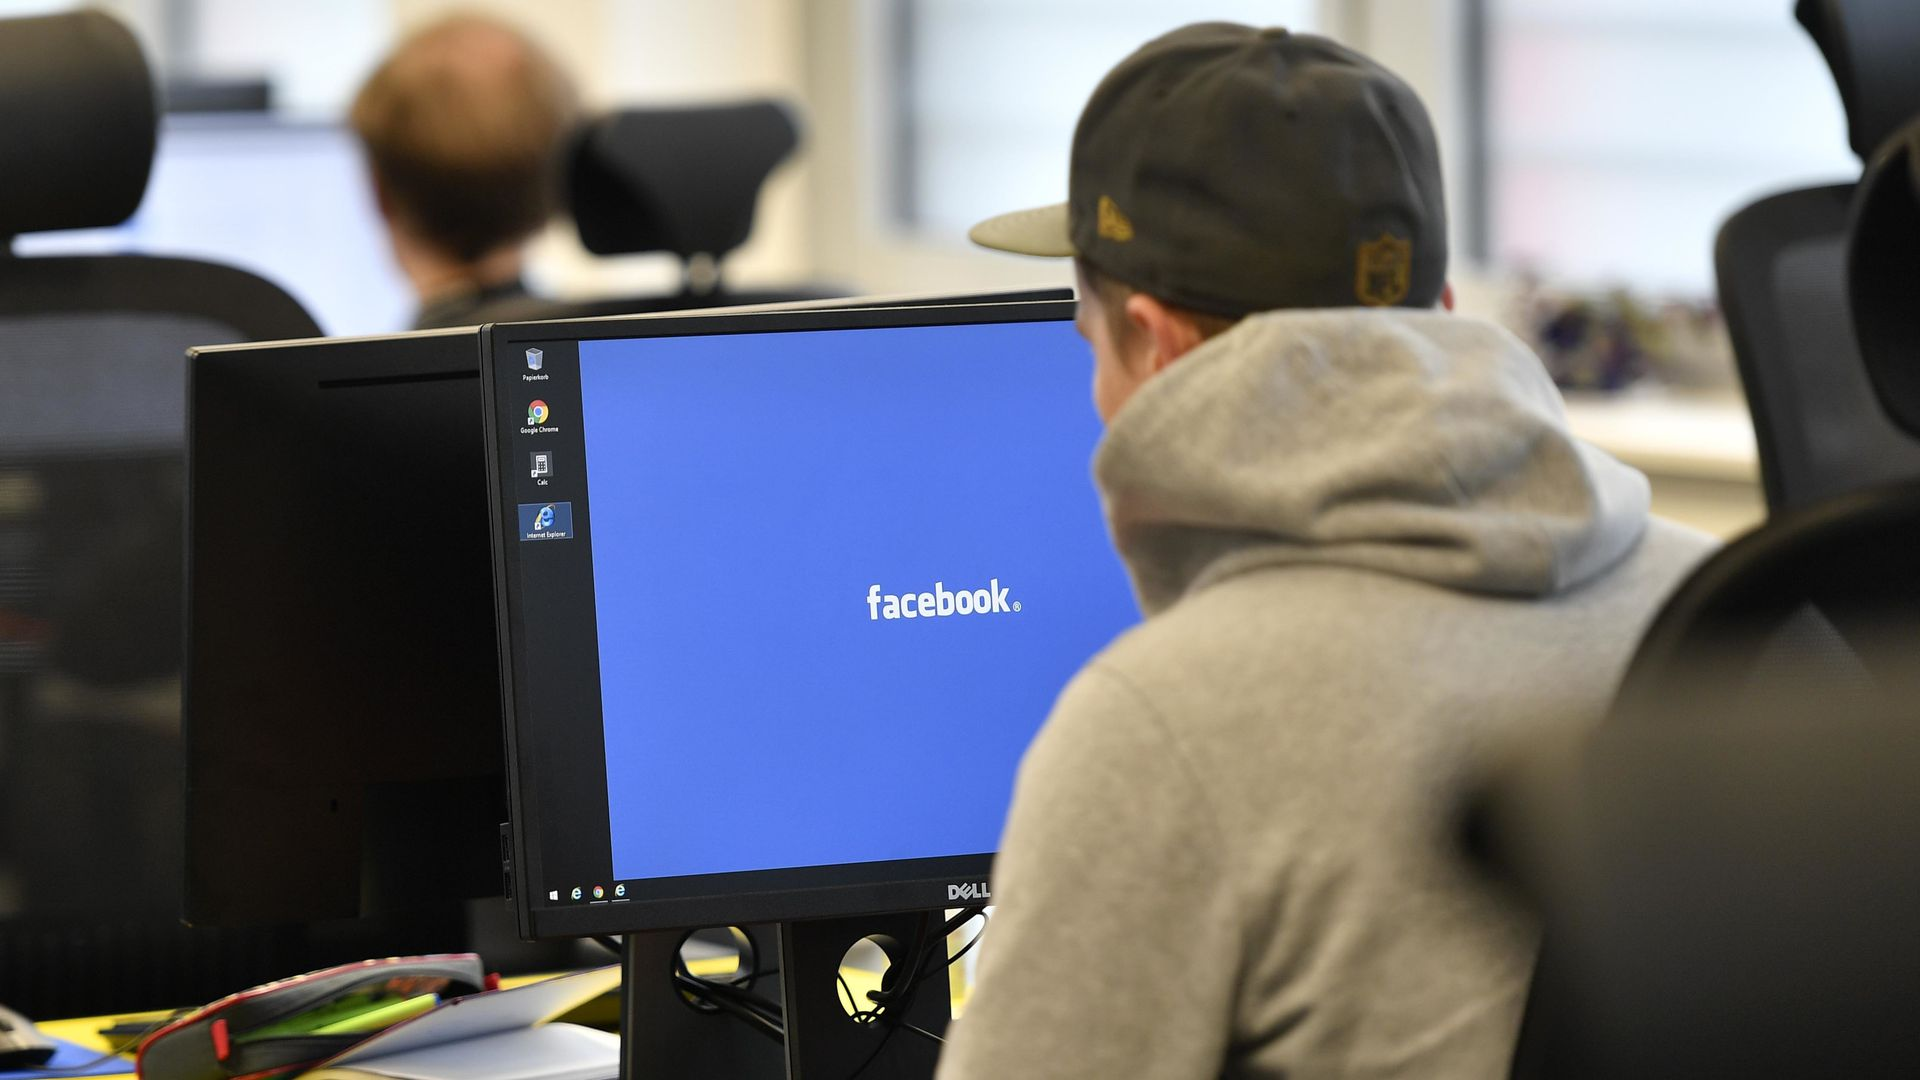 Employees of the Competence Call Center (CCC) work for the Facebook Community Operations Team in Essen, Germany.